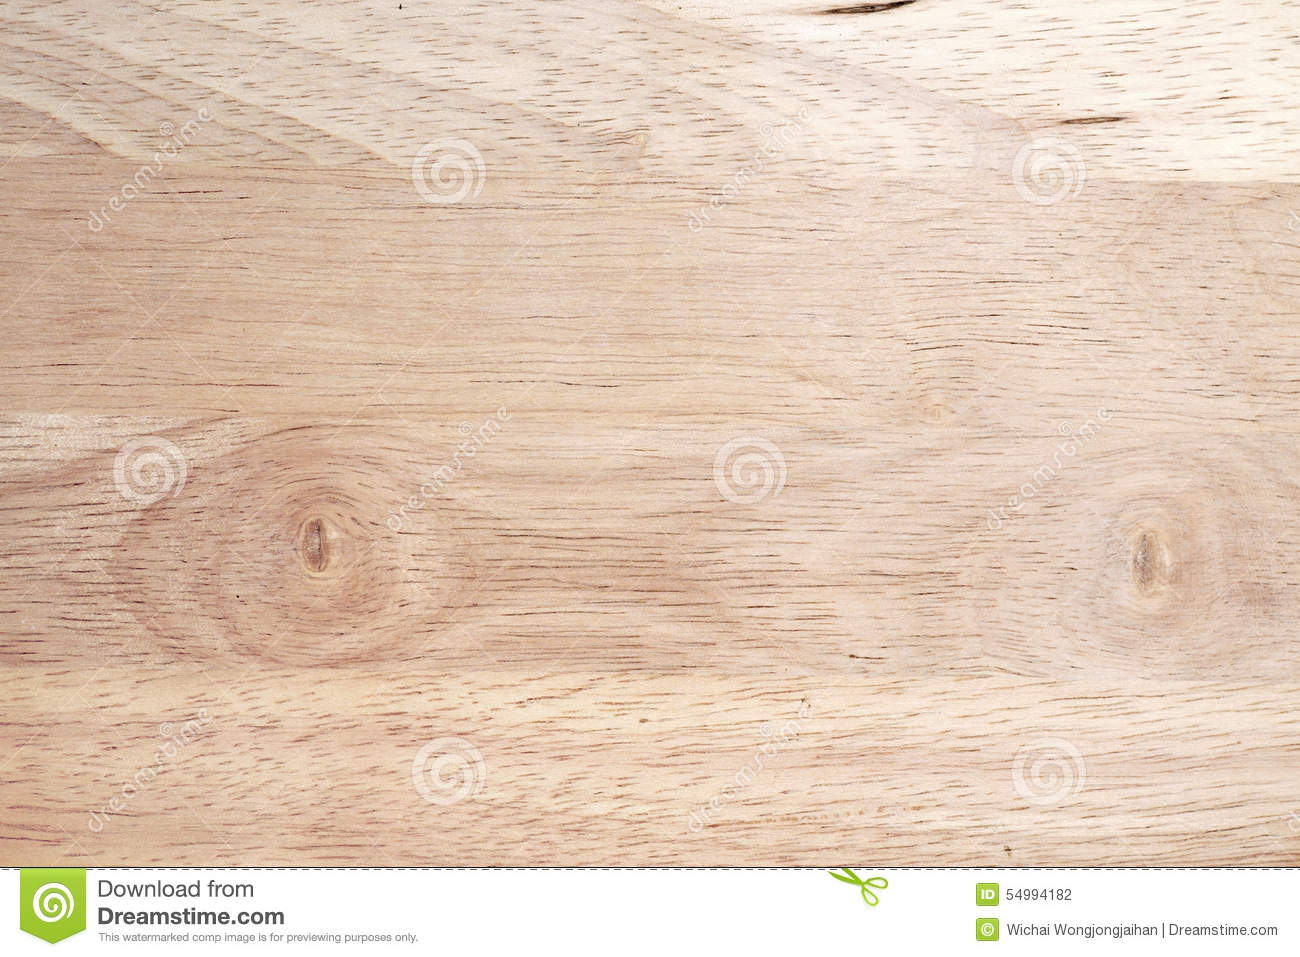 Wood background.